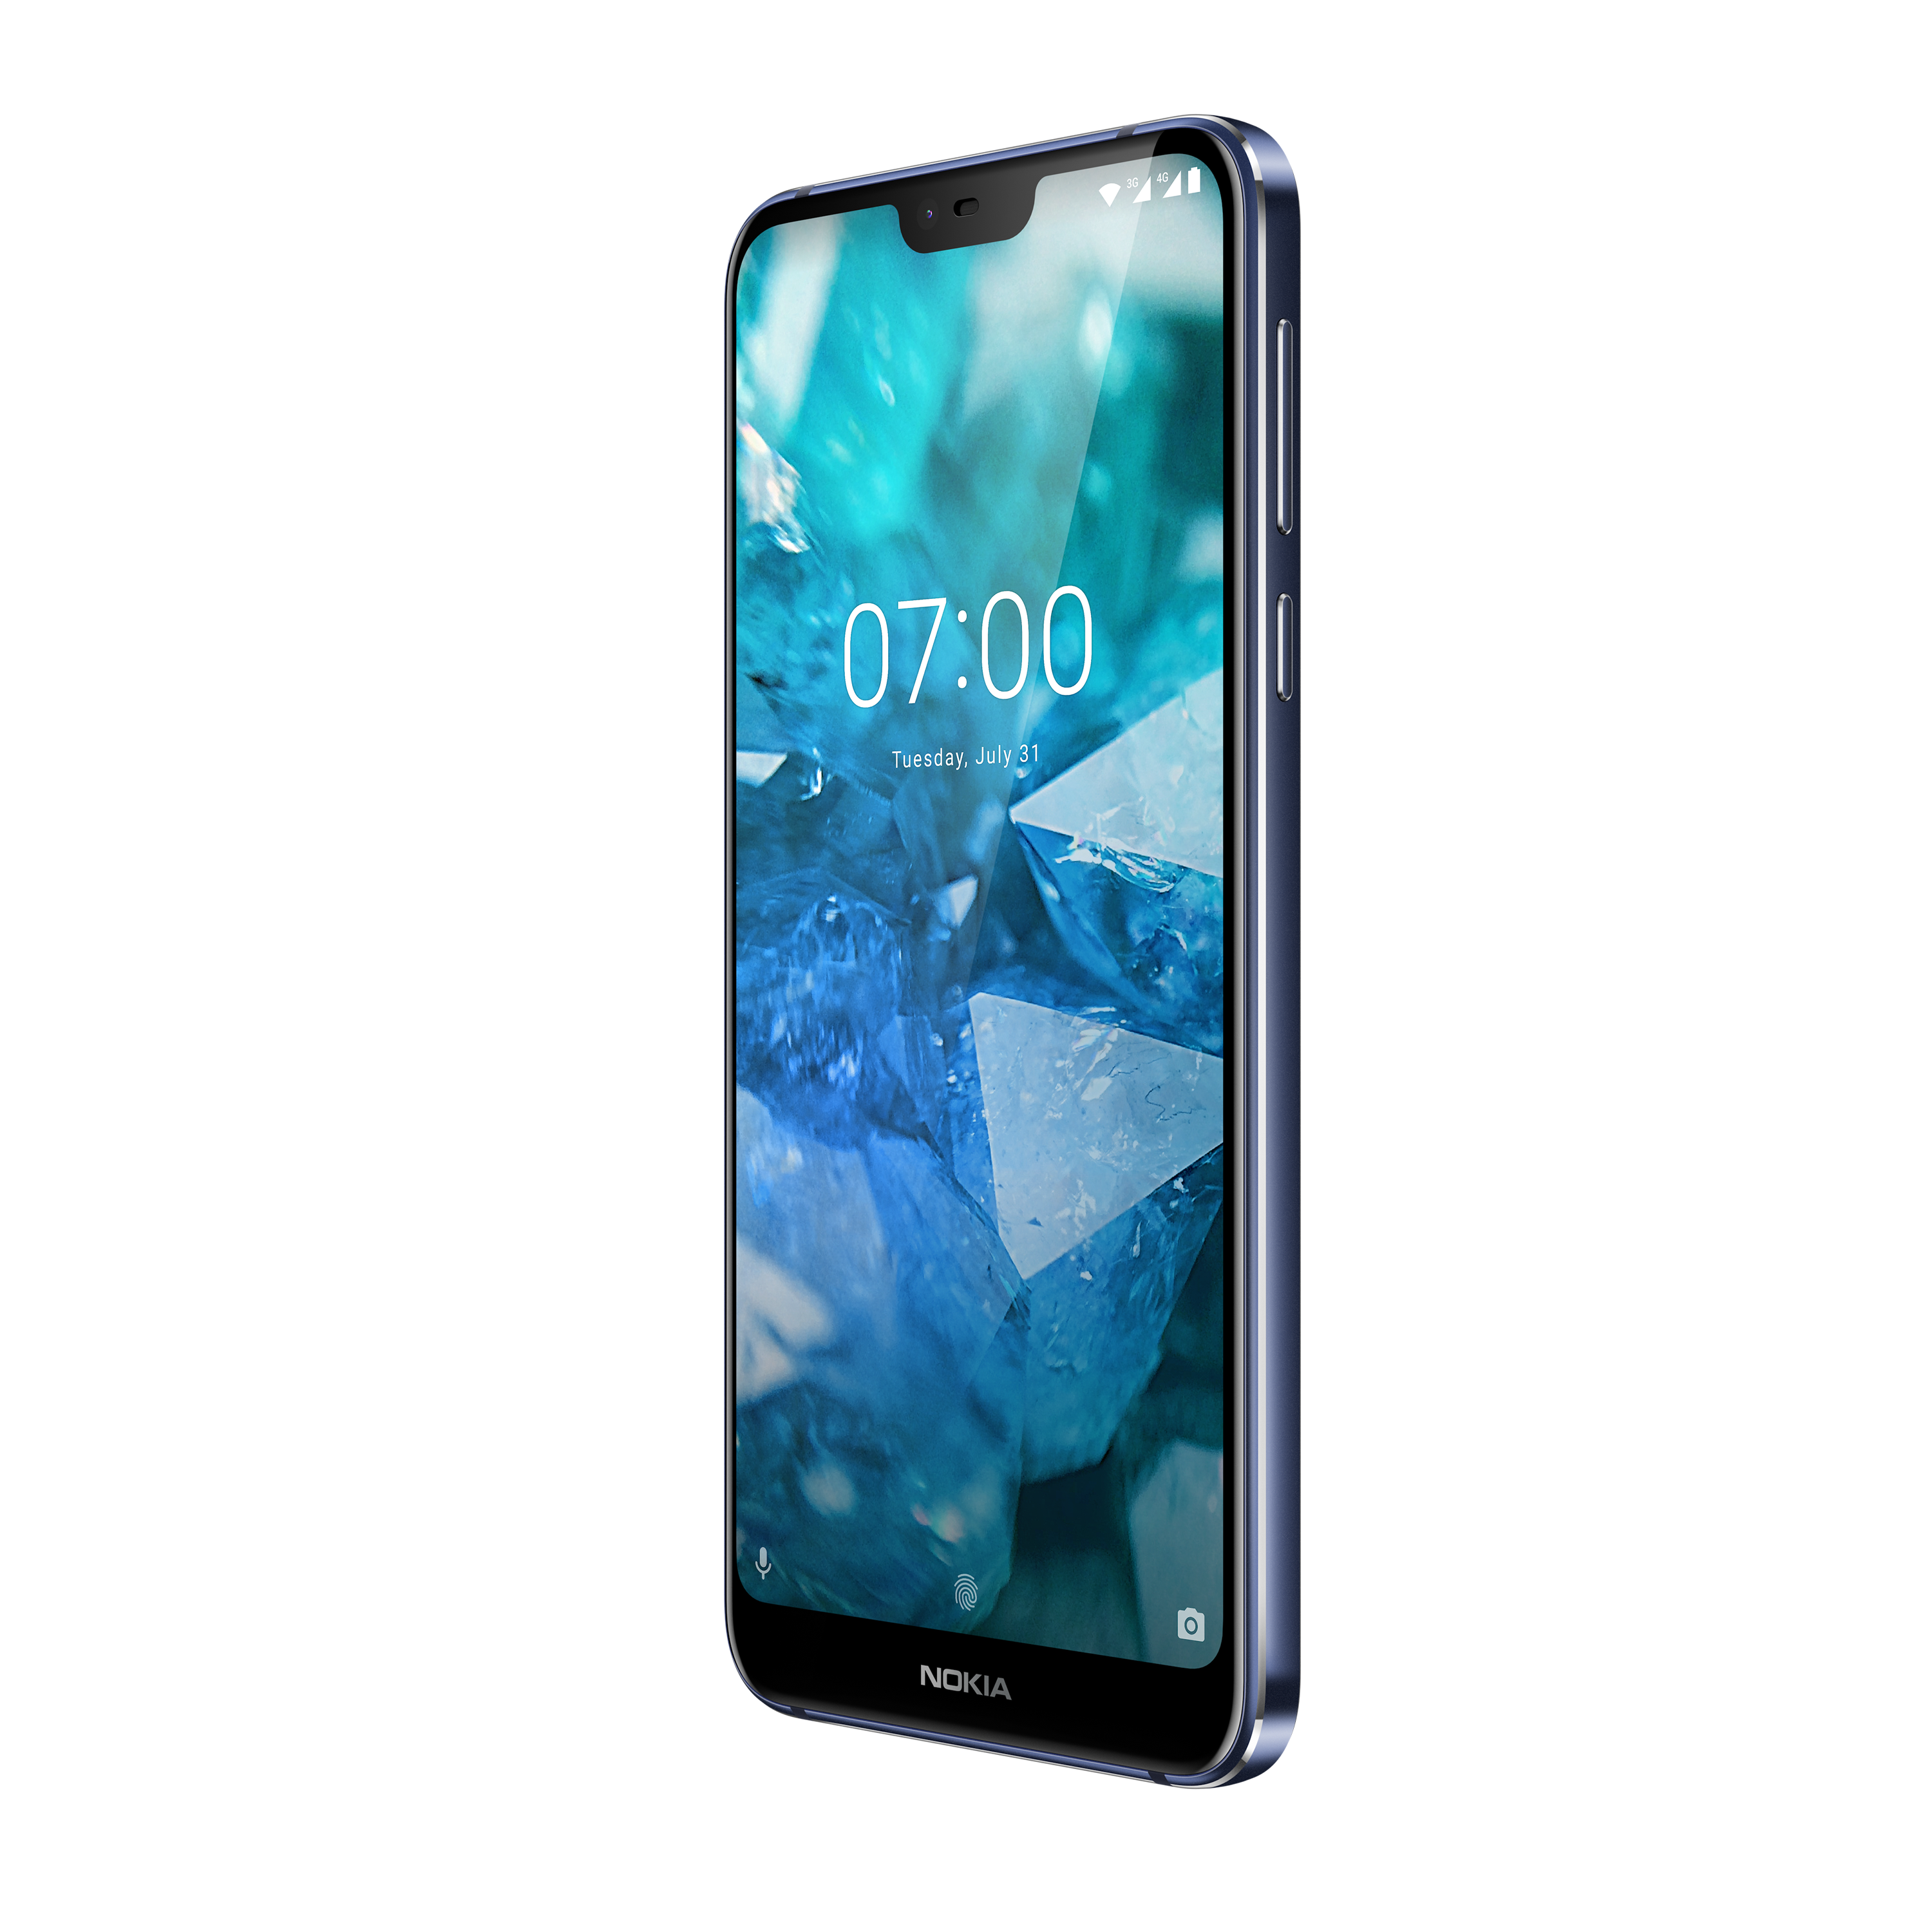 Image showing the front view of Nokia 7.1